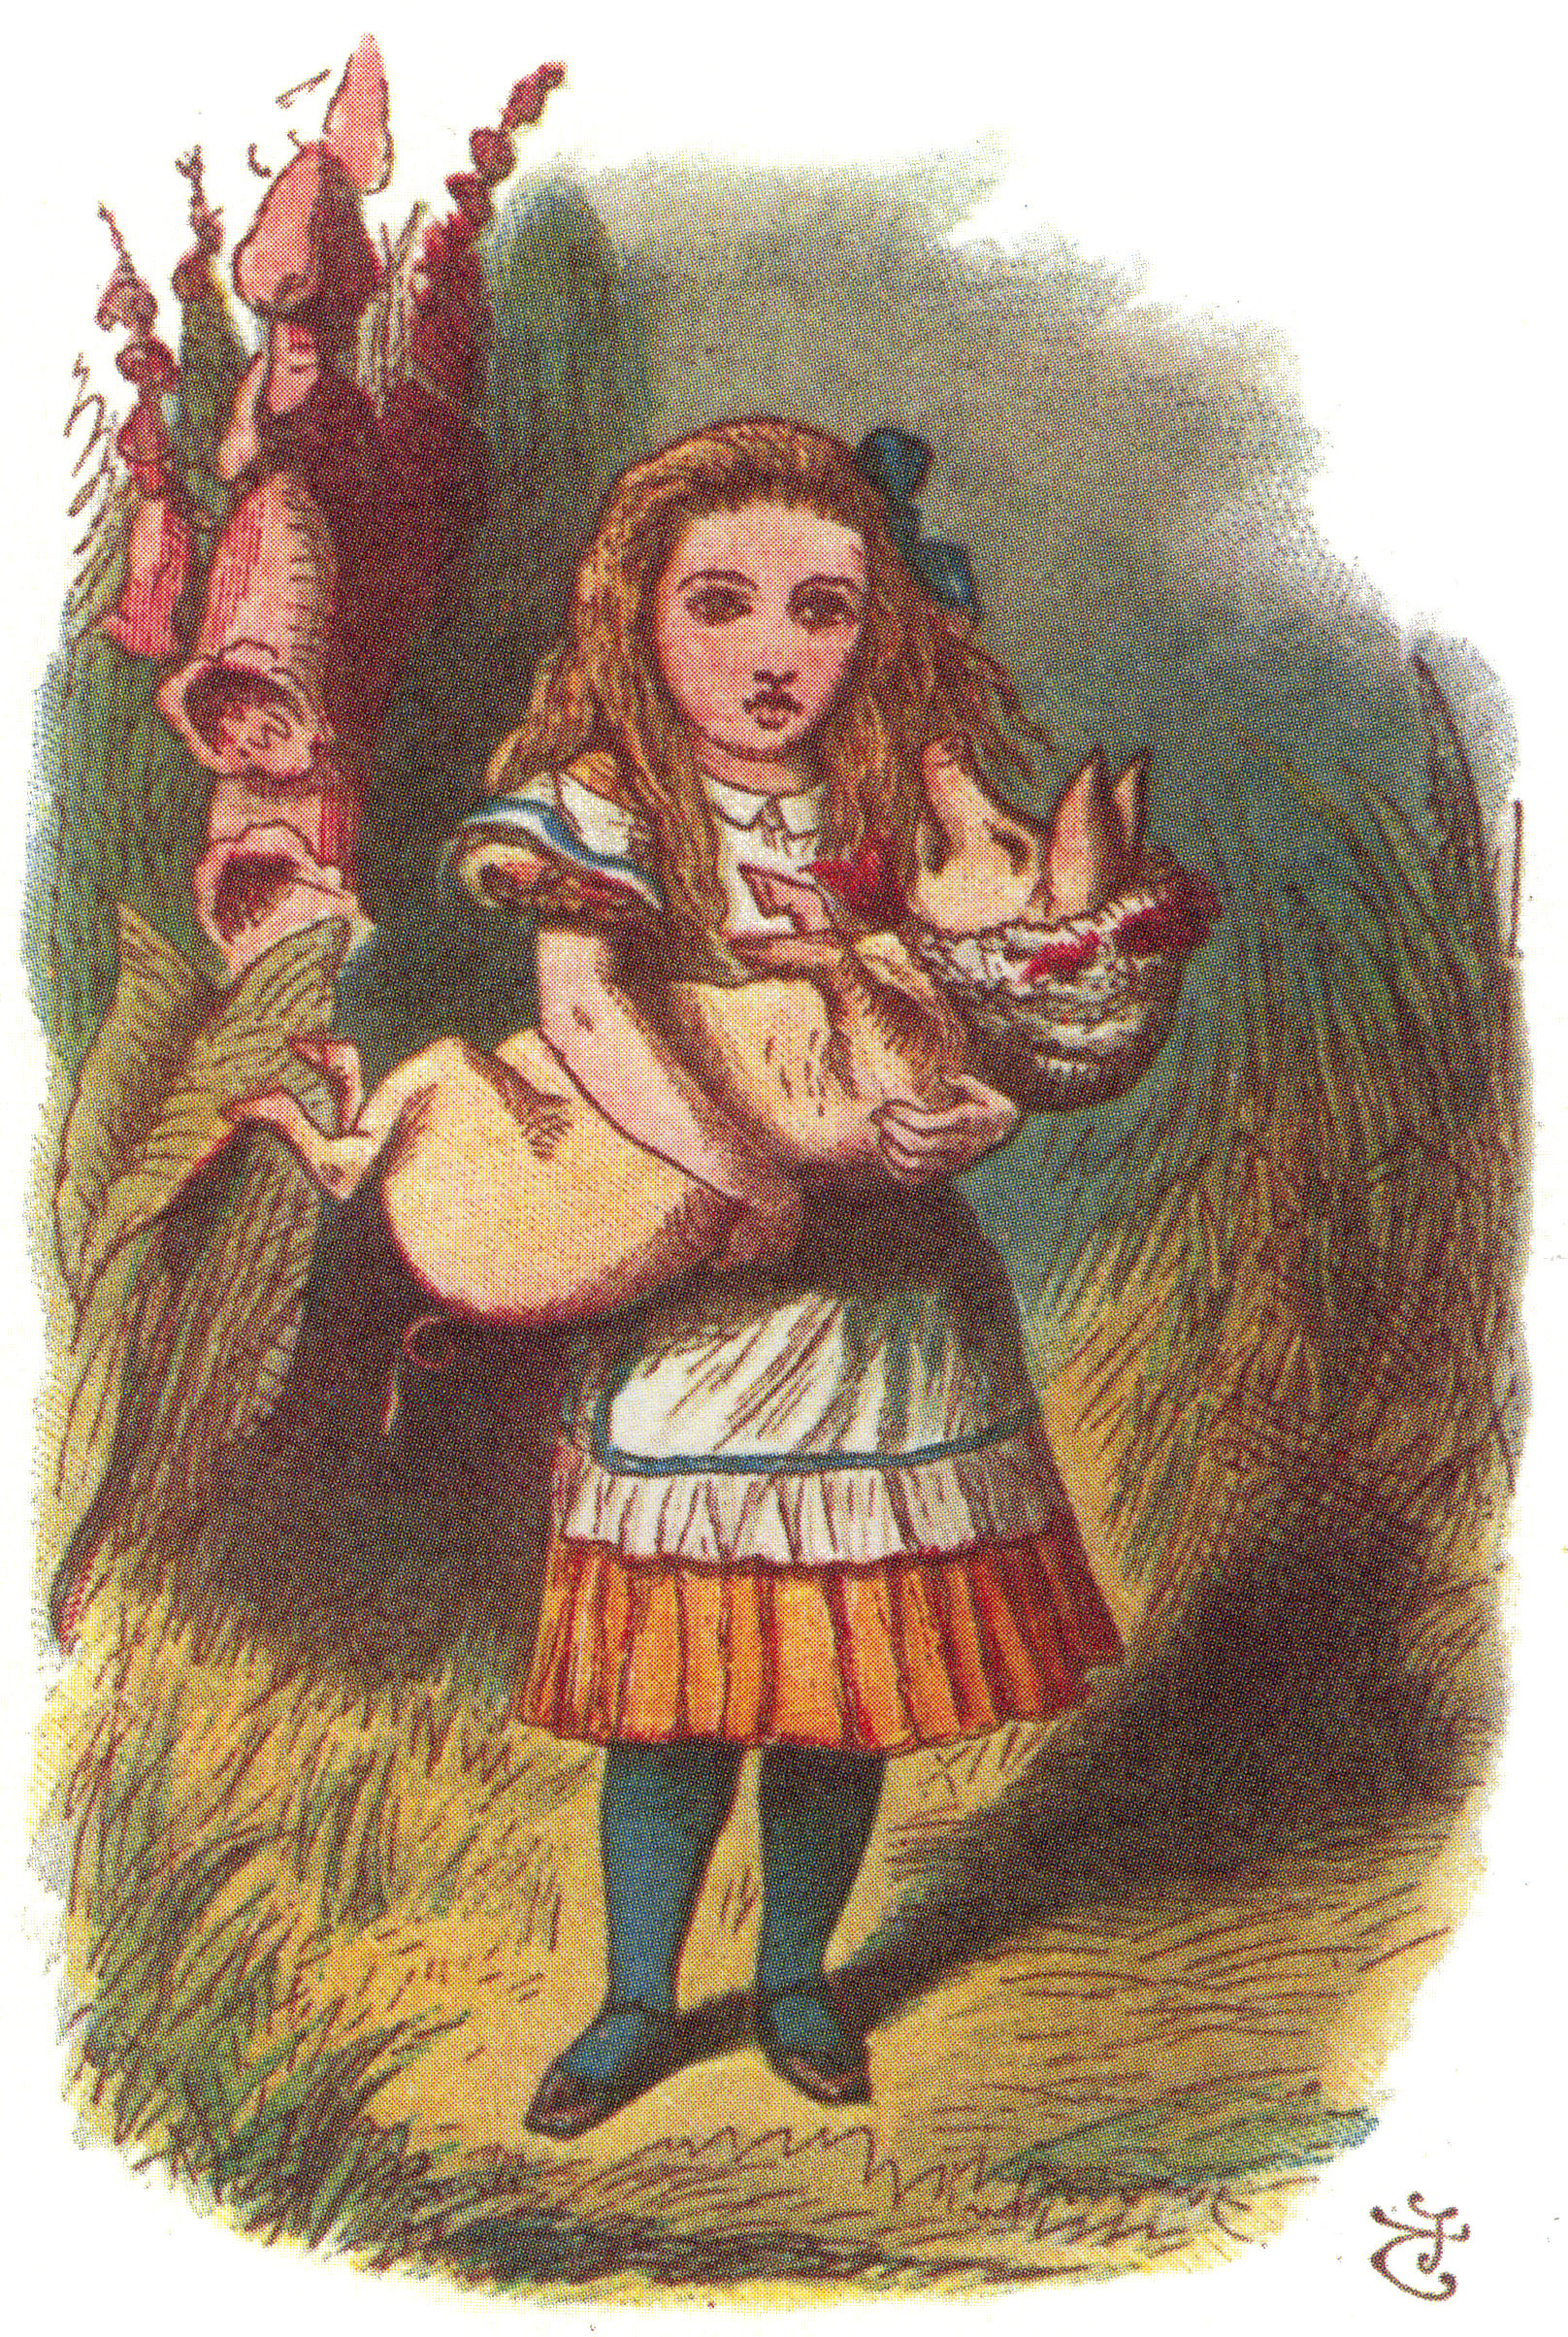 Alice carrying the pig baby, colored